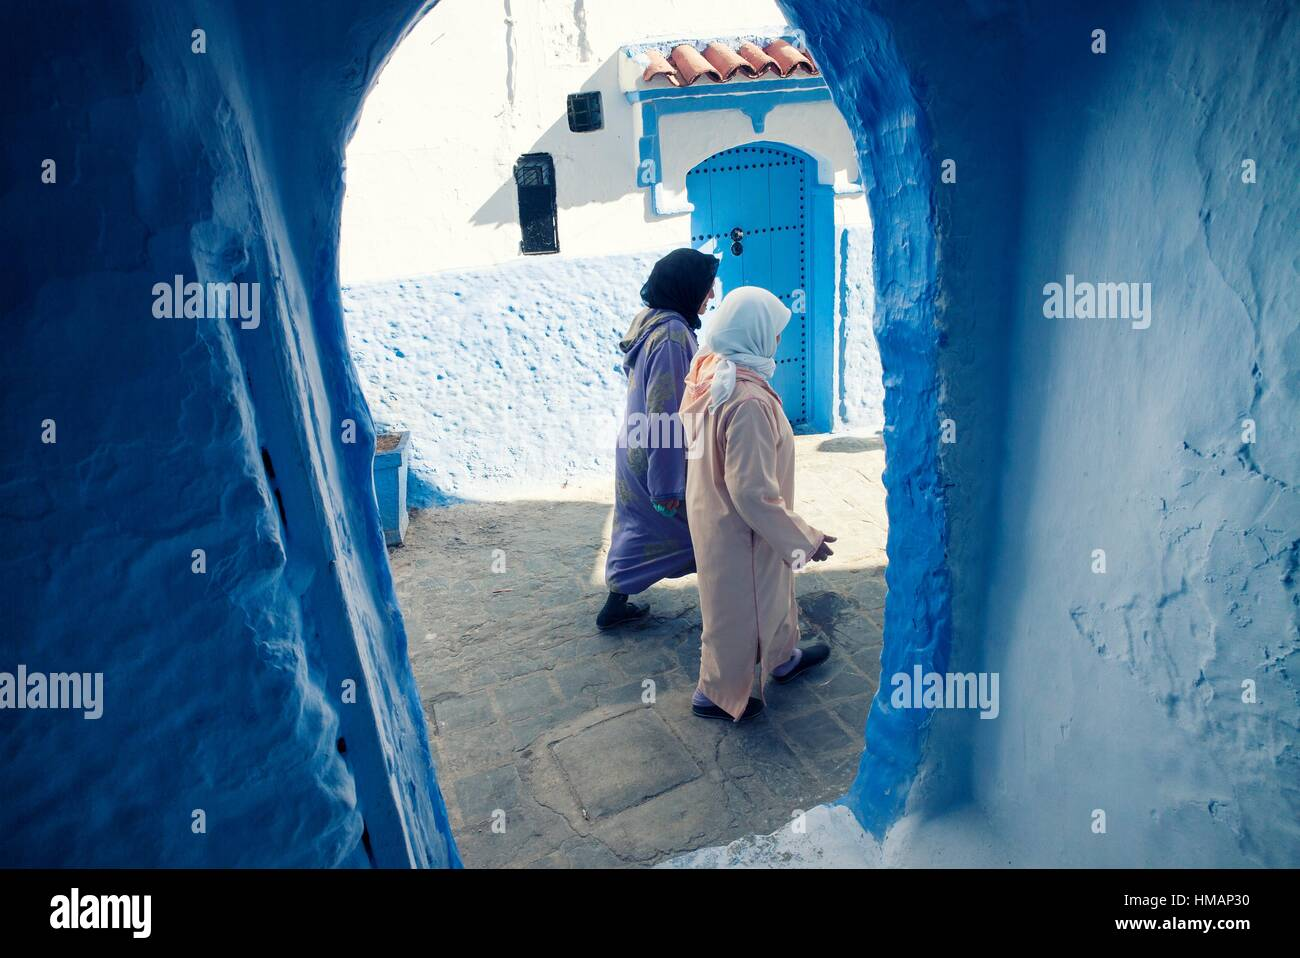 Two women with djellabas and hijabs walking, viewed through an archway. Chaouen, Morocco - Stock Image